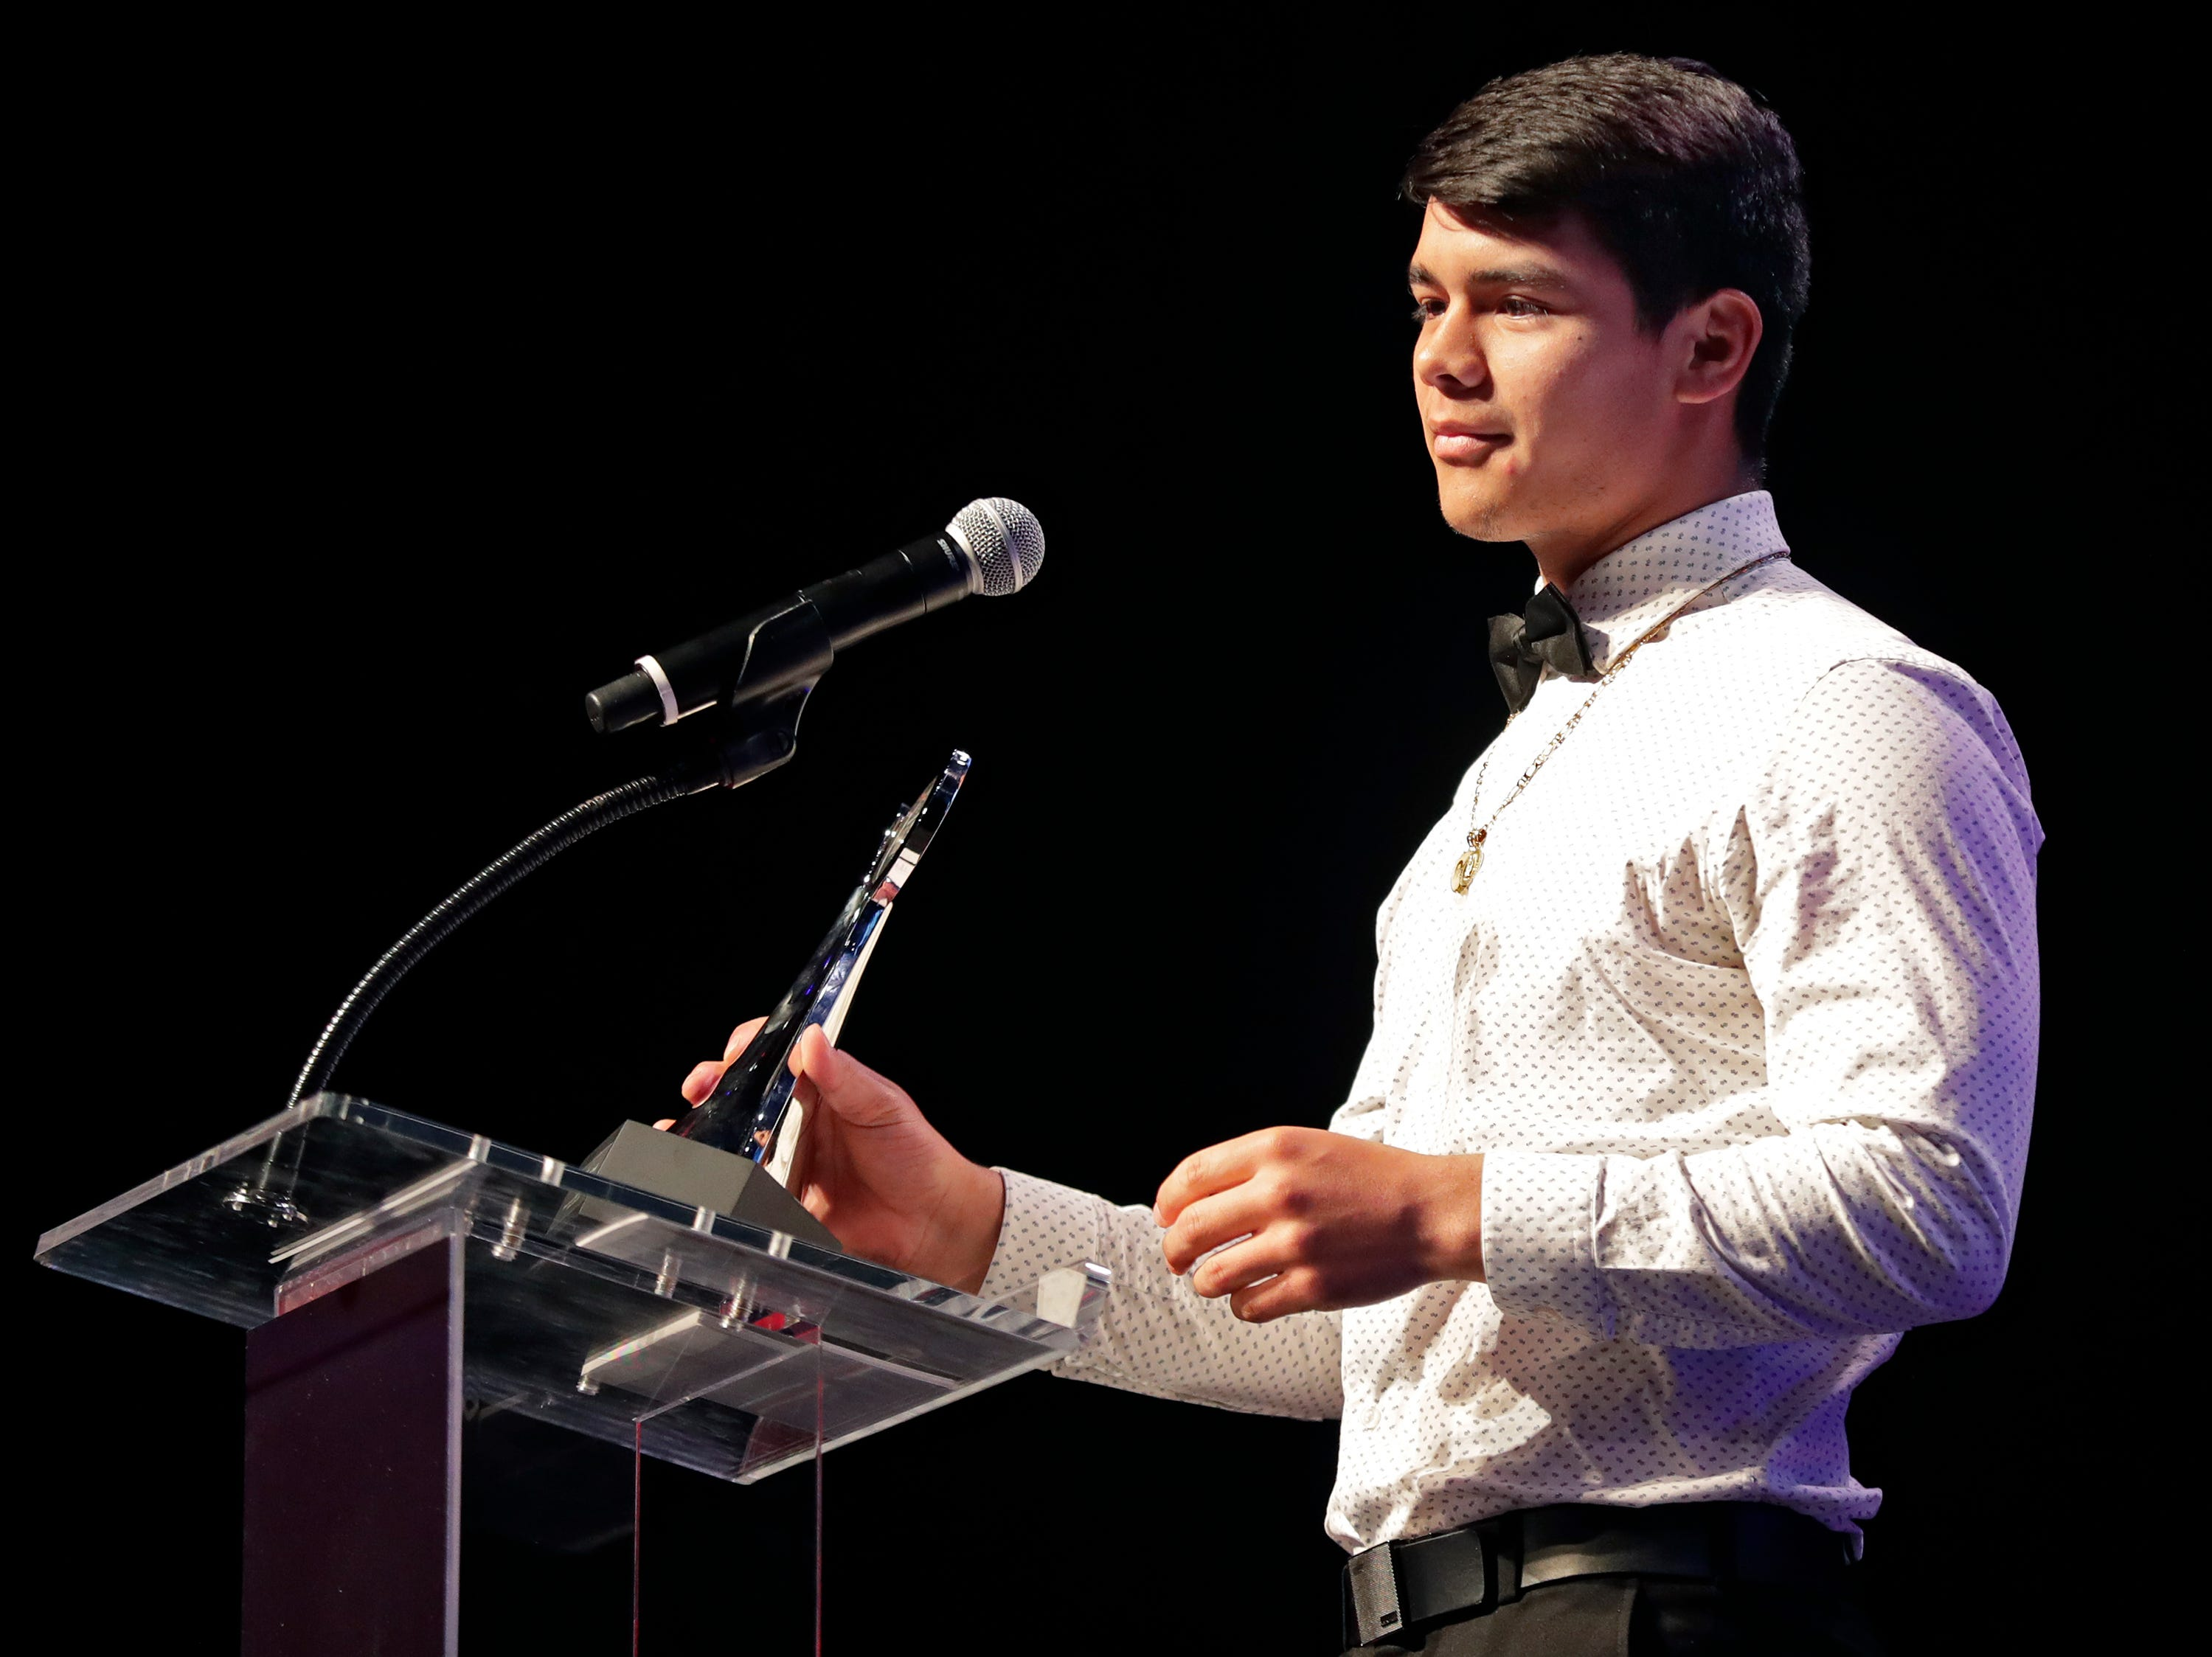 Boys Soccer Player of the Year, Oshkosh West's Edgar Heredia during the Wisconsin High School Sports Awards show at the Fox Cities Performing Arts Center on Wednesday, May 8, 2019, in Appleton, Wis. Olympic champion Michael Phelps was the guest speaker. The annual event was presented by USA TODAY NETWORK-Wisconsin.  Wm. Glasheen/USA TODAY NETWORK-Wisconsin.